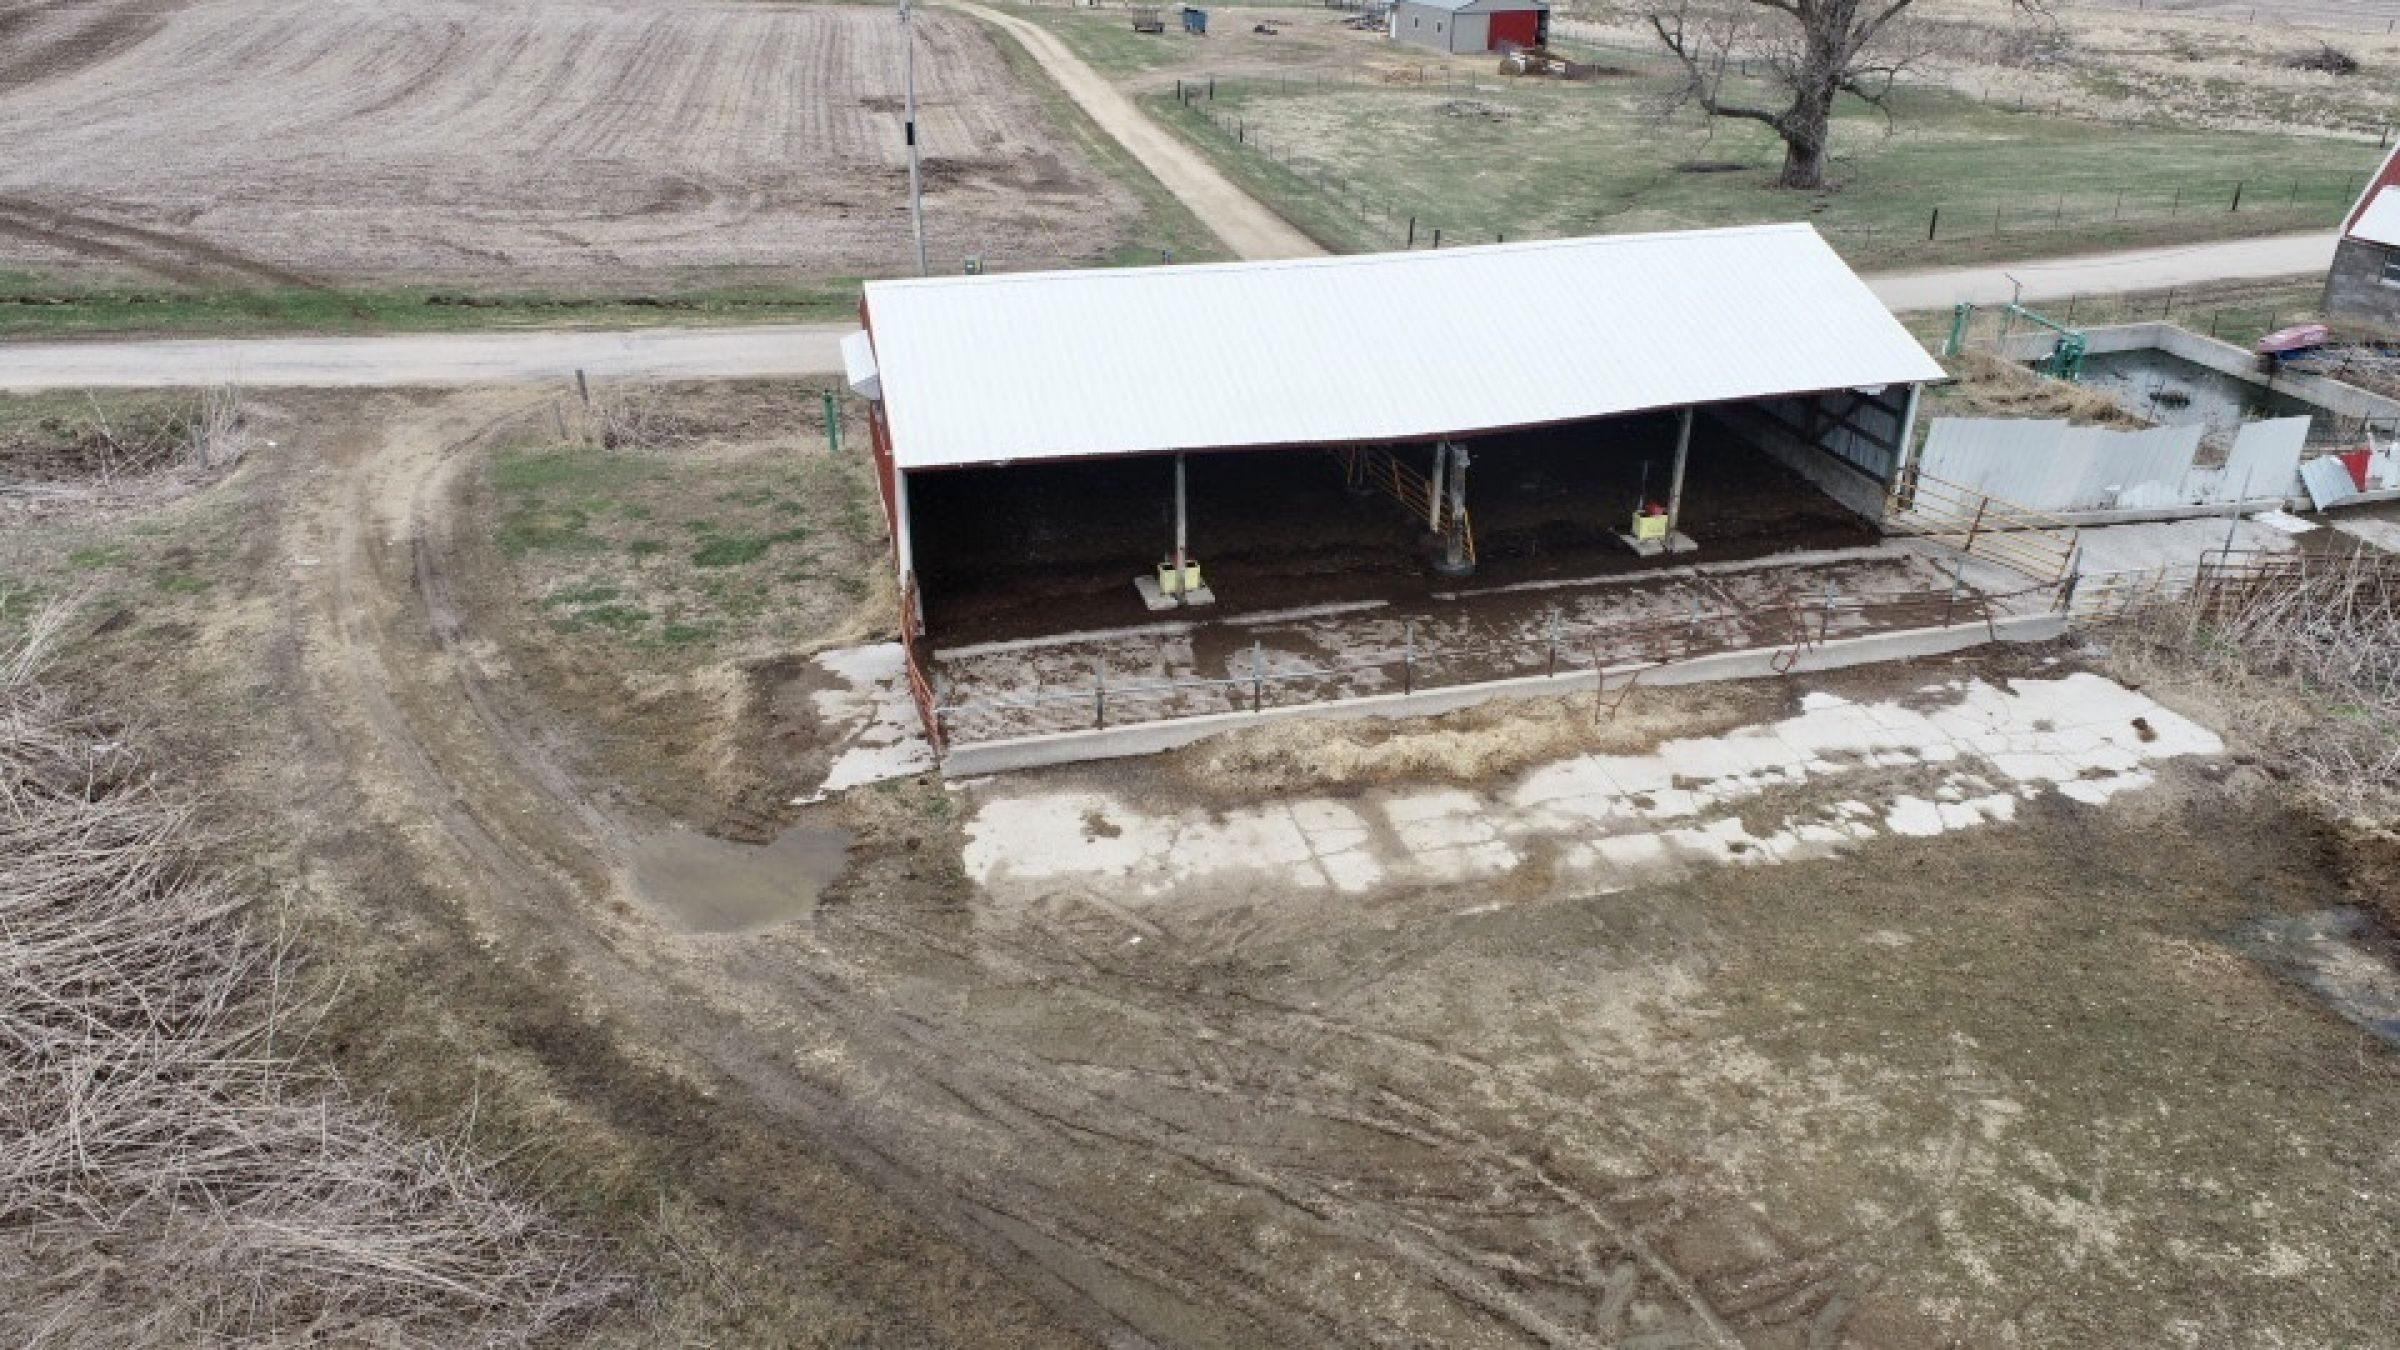 land-lafayette-county-wisconsin-47-acres-listing-number-15428-7-2021-03-25-172100.jpg